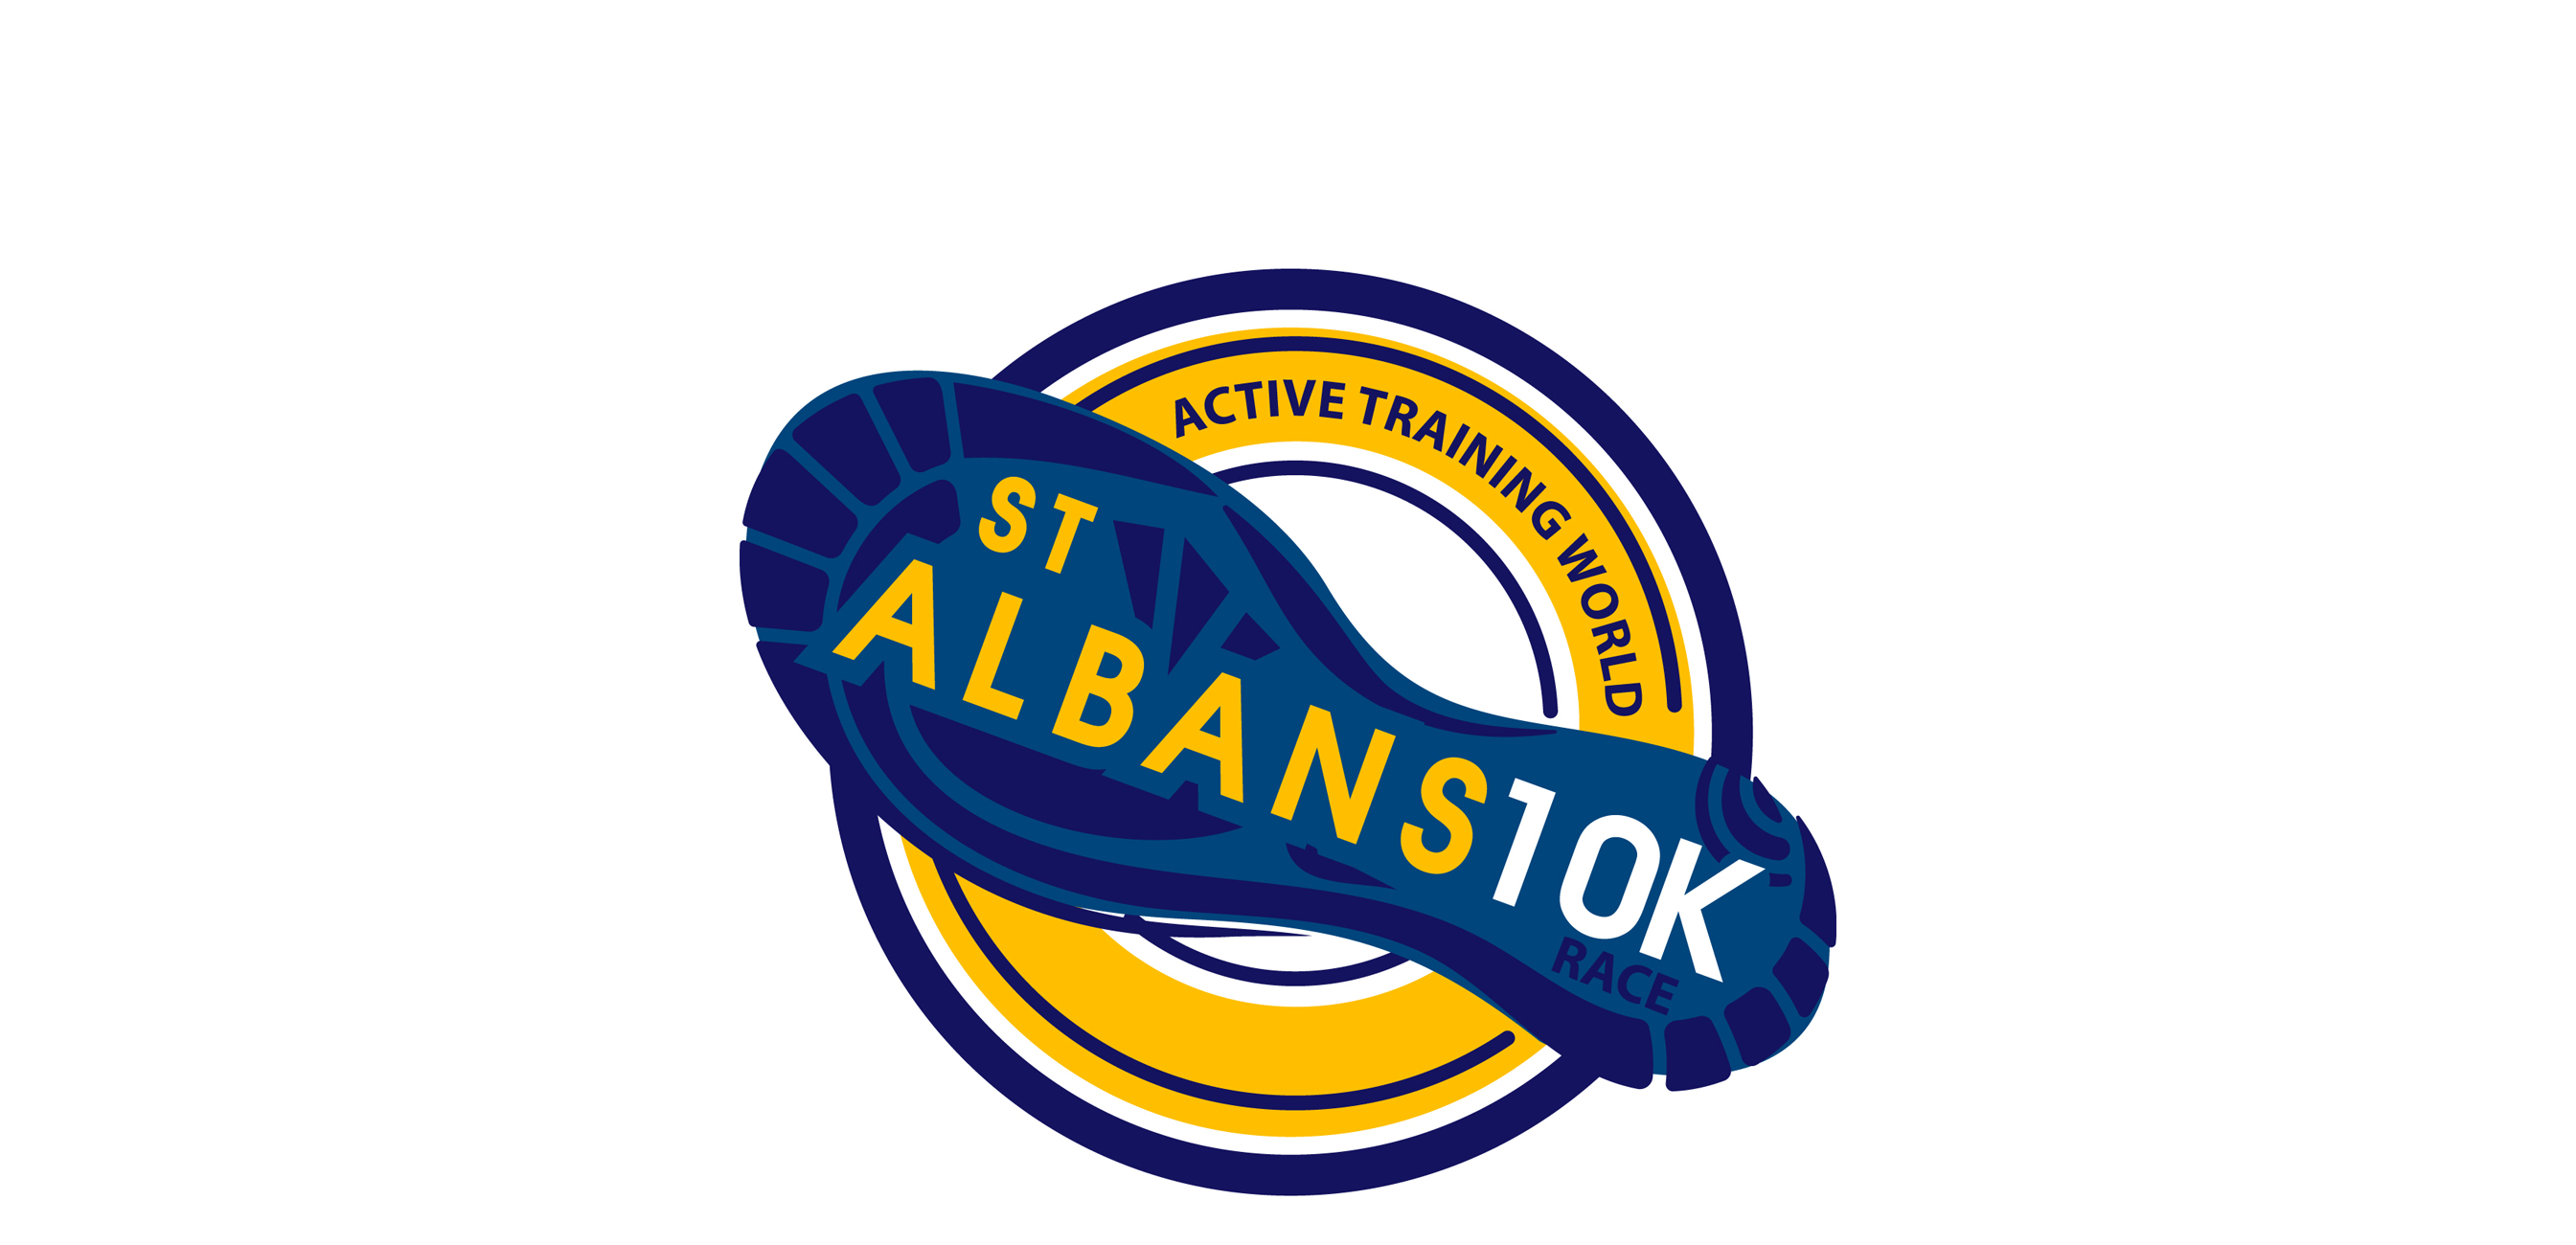 St Albans 10K \u002D April - cover image